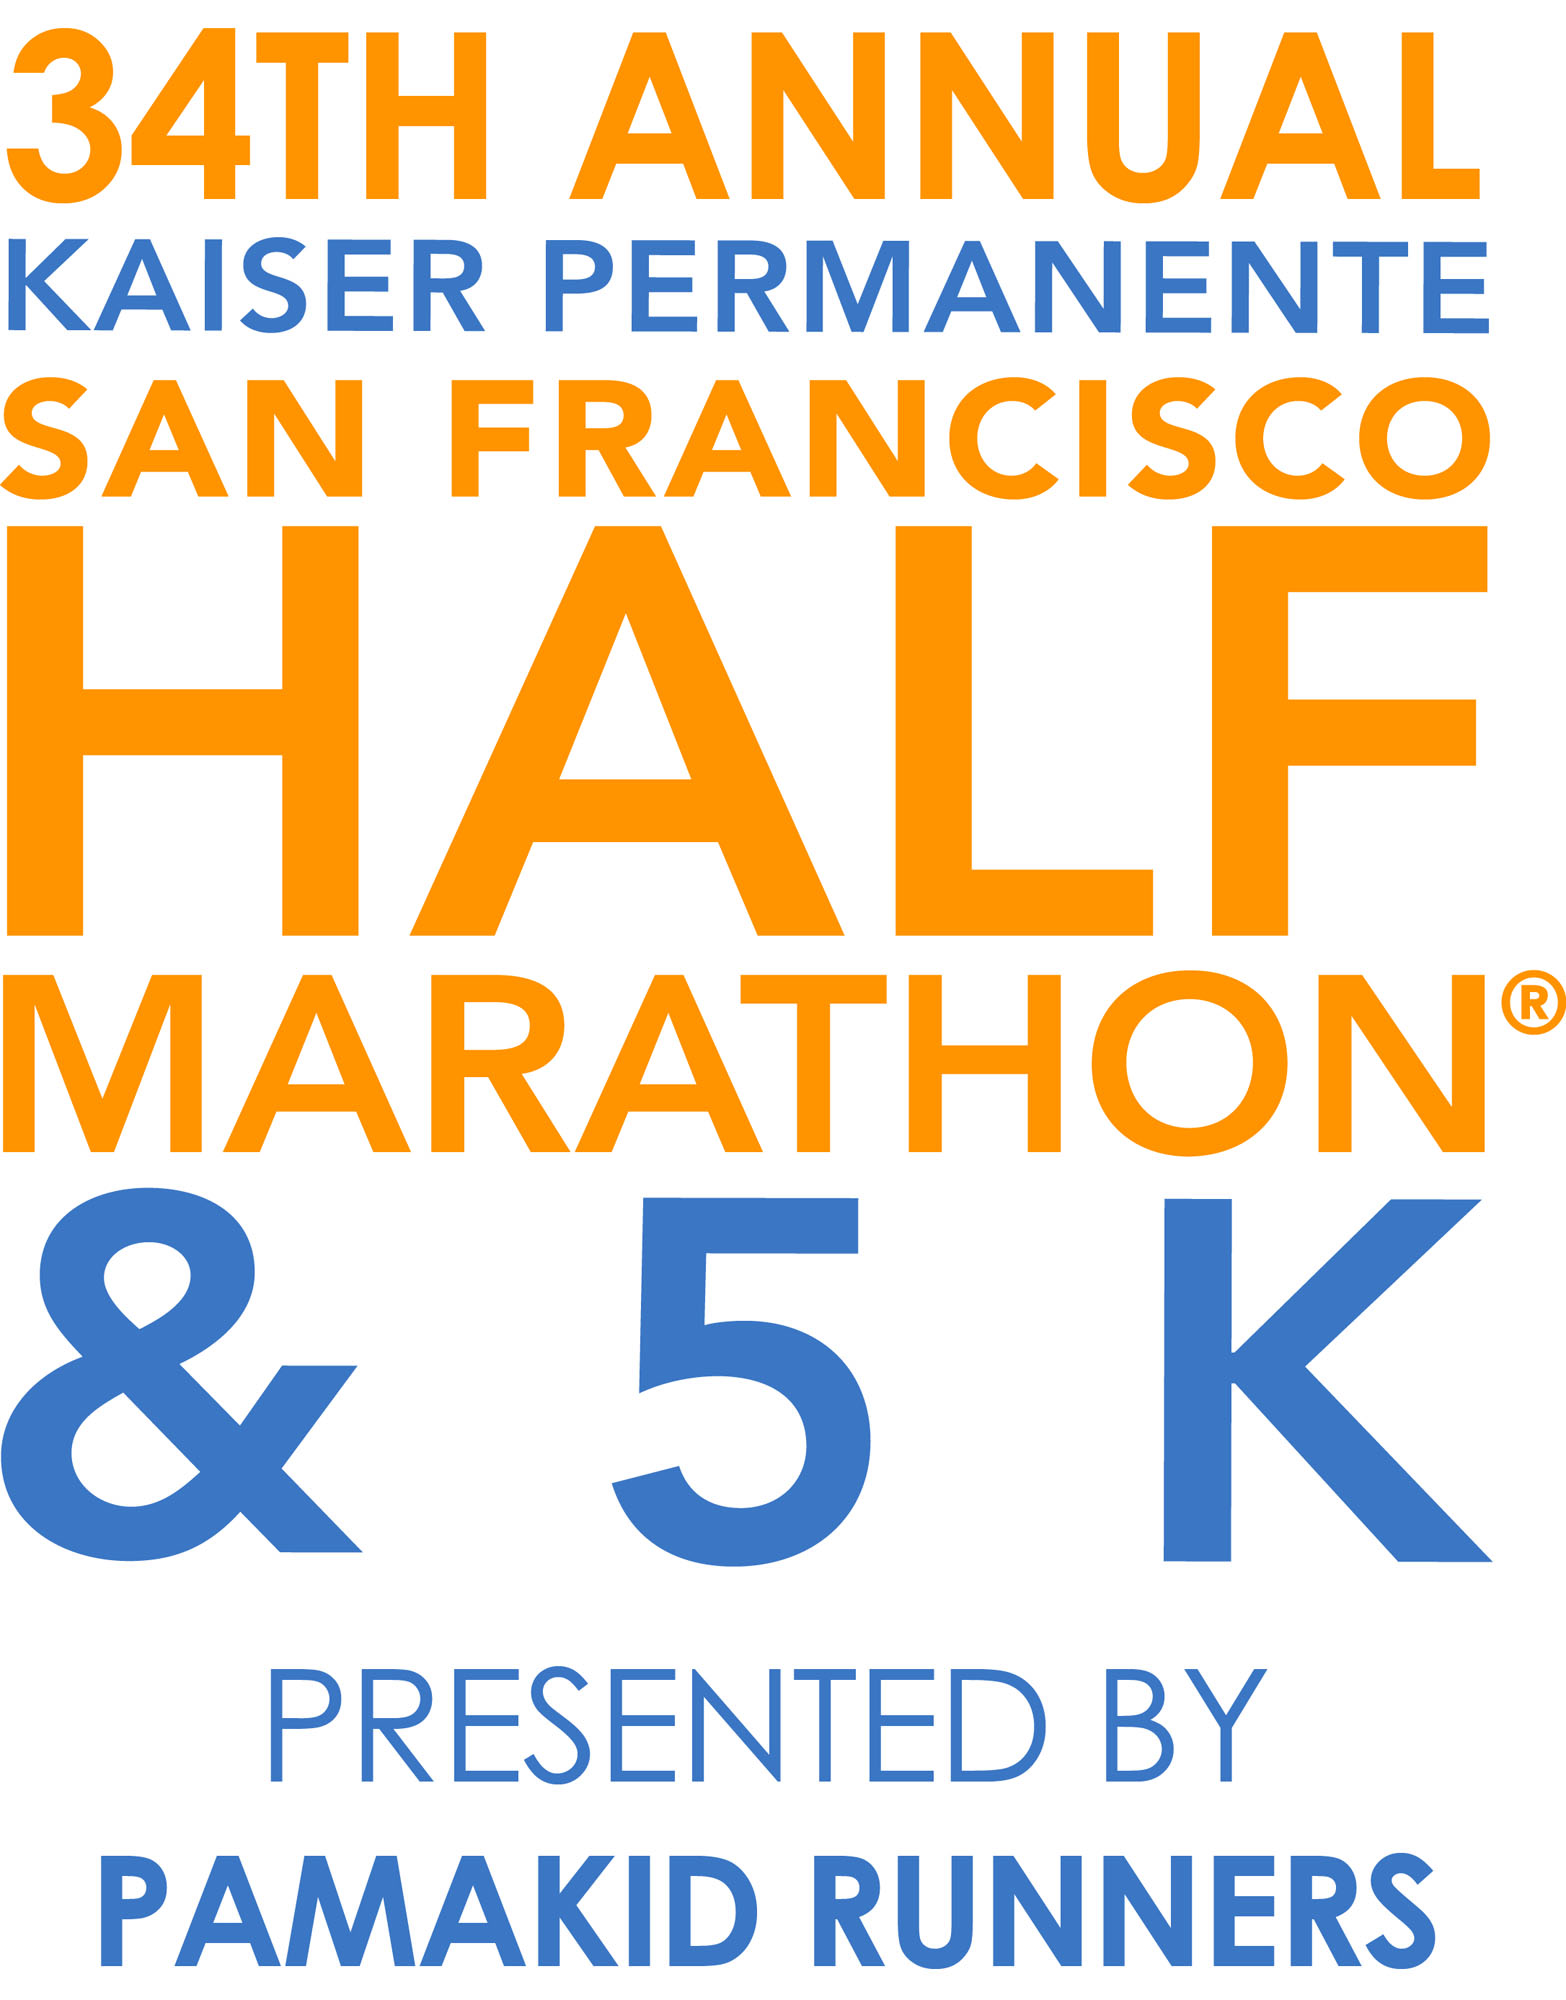 San Francisco, California. November 9, - November 10, Registration Coming Soon! The pre-registration period is now closed and will re-open on January 8th! Learn More. Run the Golden Gate Bridge! November 10, The Golden Gate Half Marathon is one of the few races you can enter in the Bay area that takes runners across the.